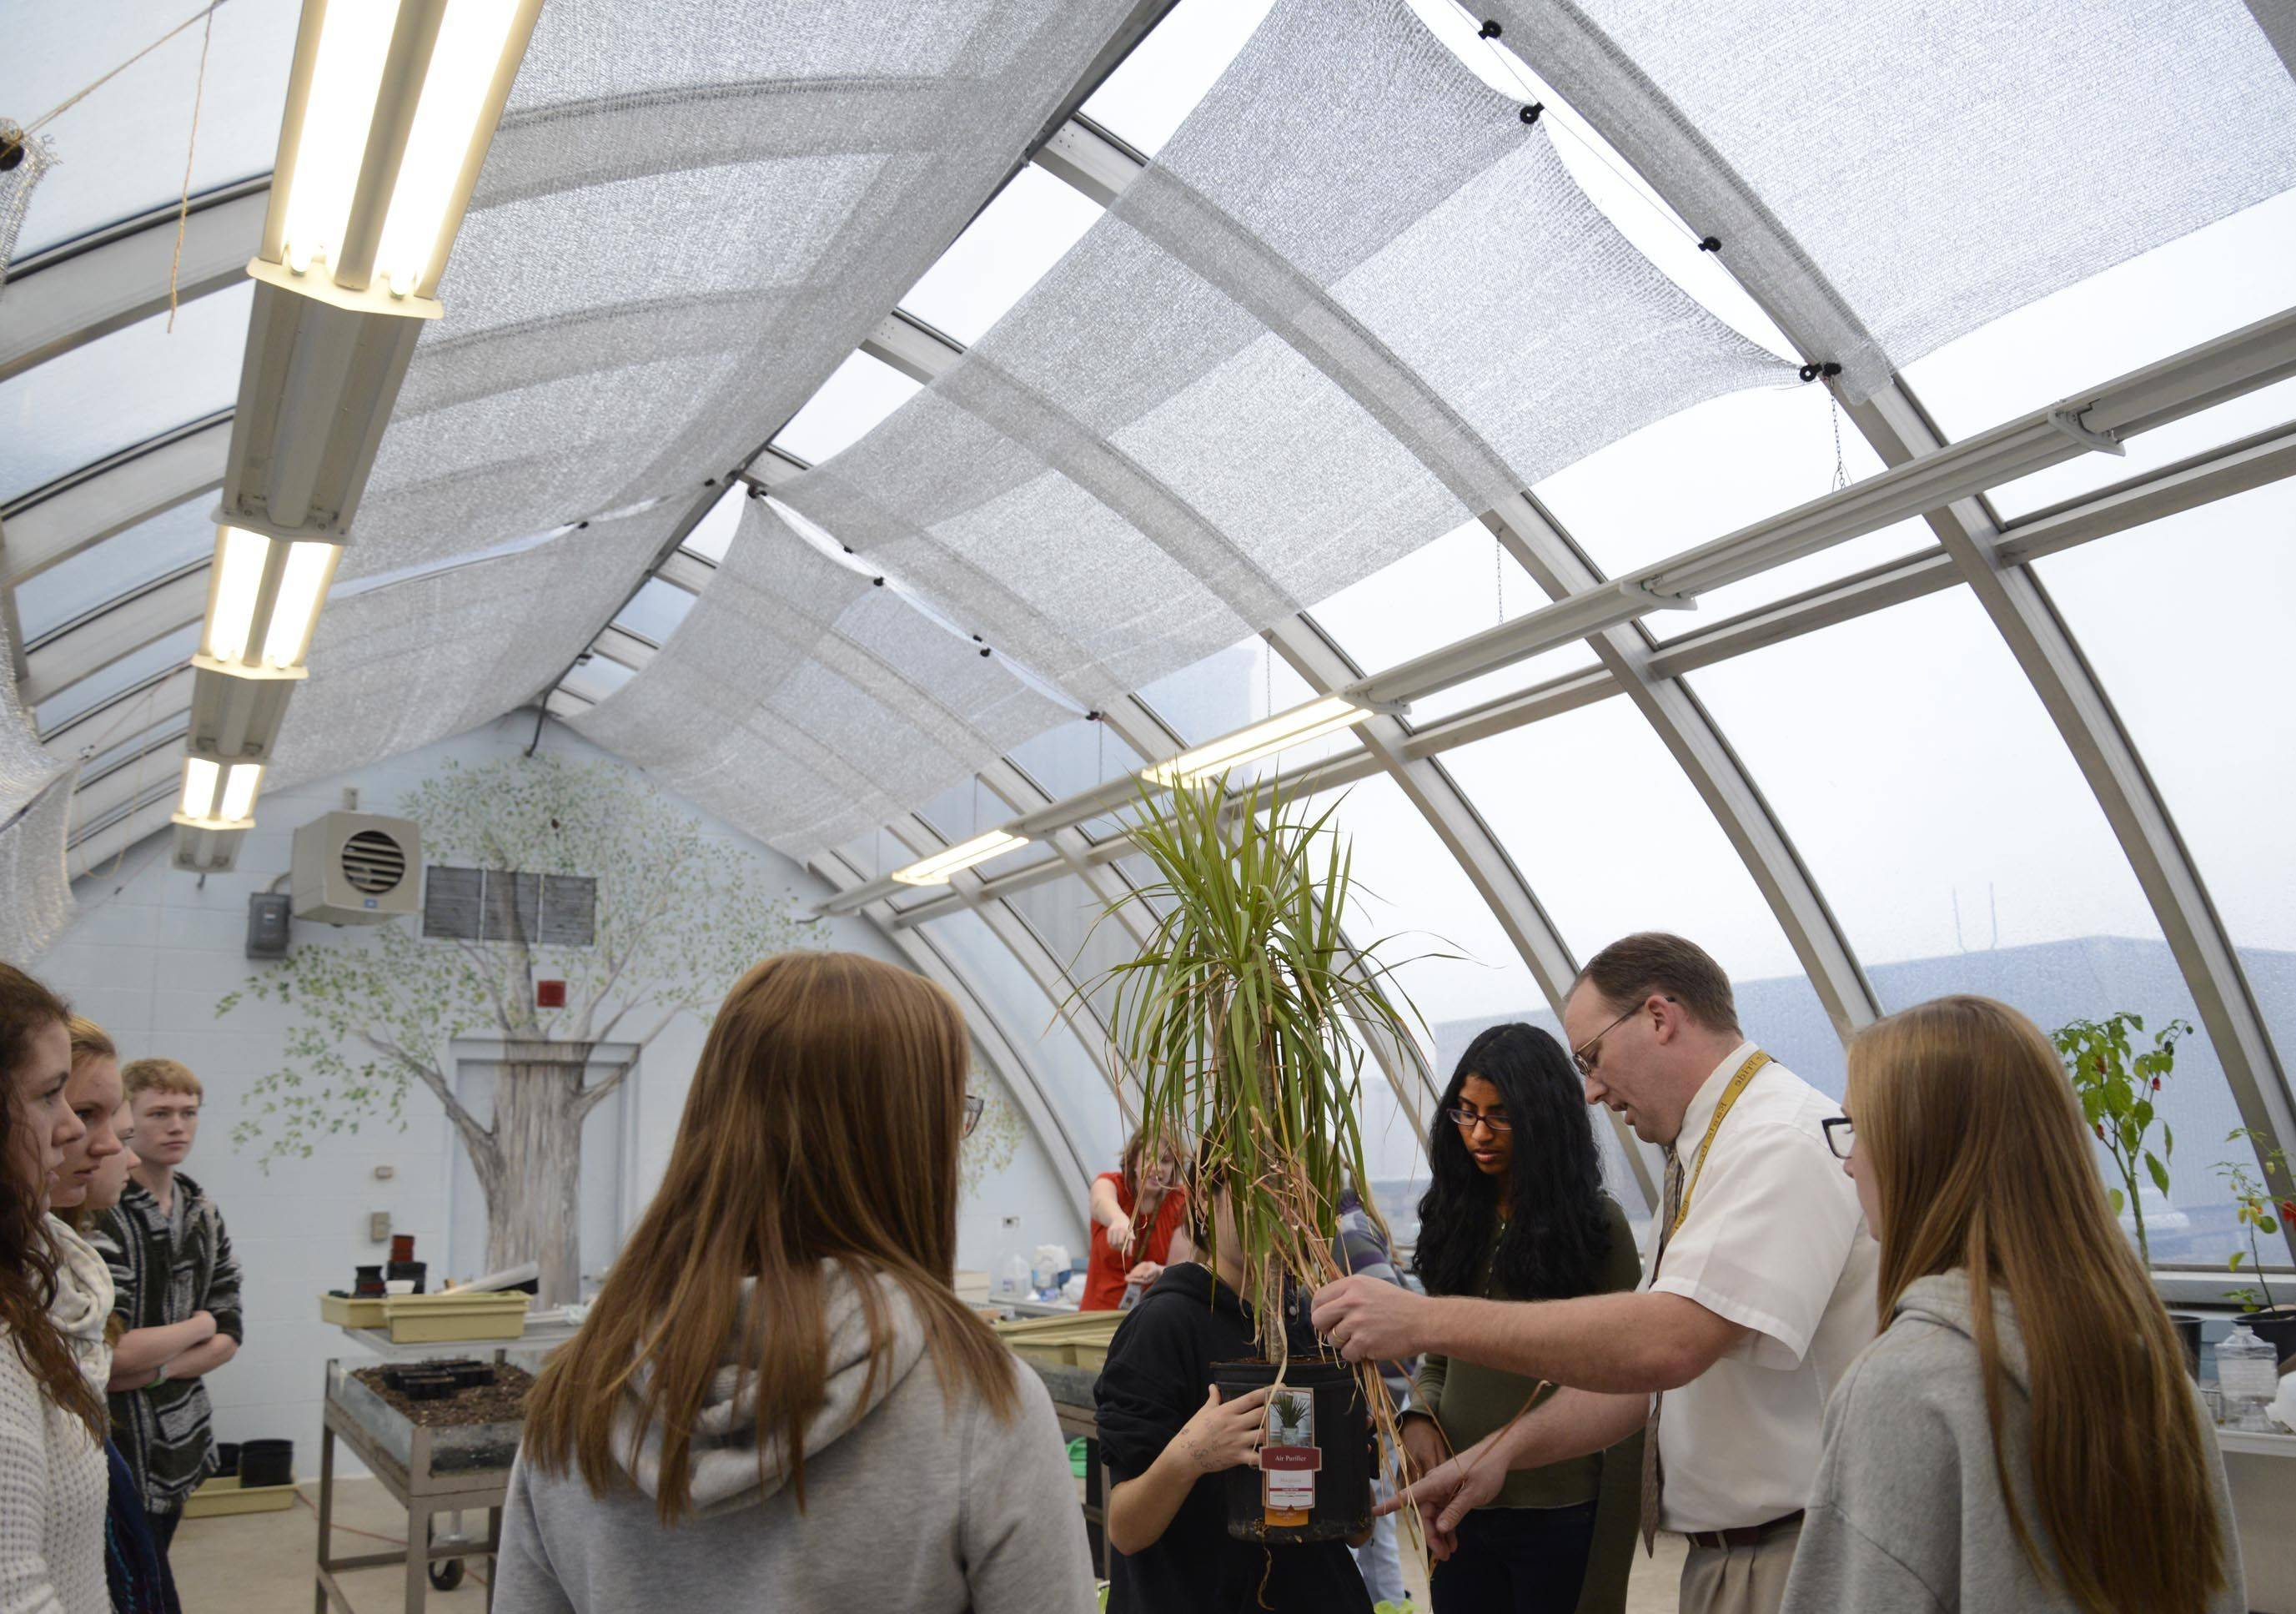 Terry Stroh, head of the science department at Jacobs High School, works with students in the newly renovated greenhouse on the high school's roof. Stroh and the club cleaned the old greenhouse that the school used for storage.